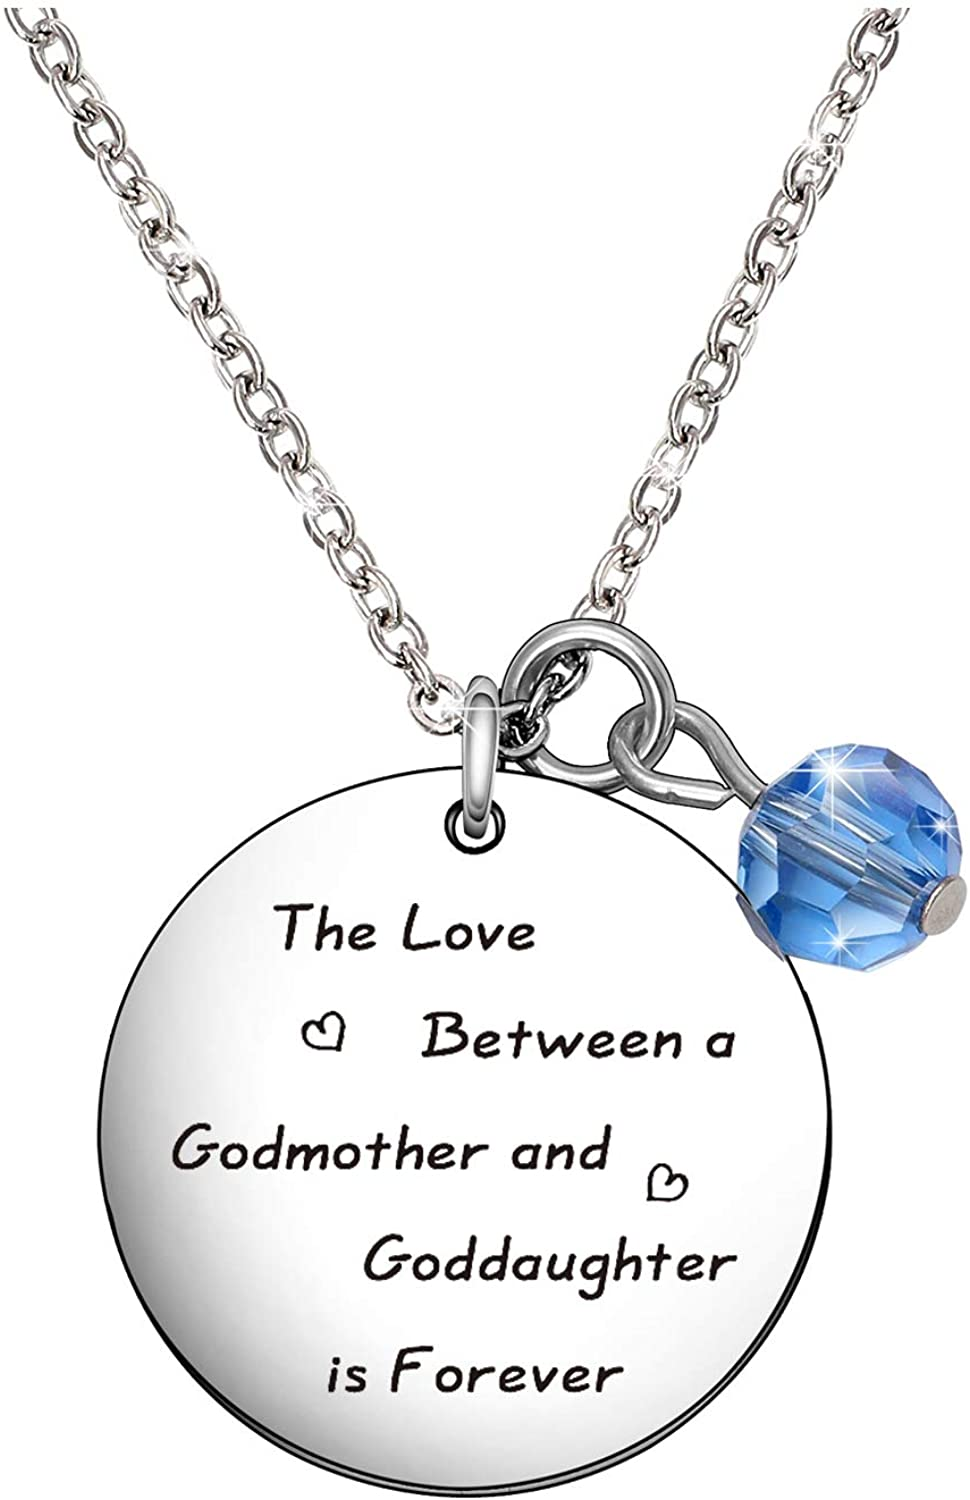 De&ai The Love Between a Godmother and Goddaughter is Forever Necklace Godmother Goddaughter Jewelry Aunt Niece Gift